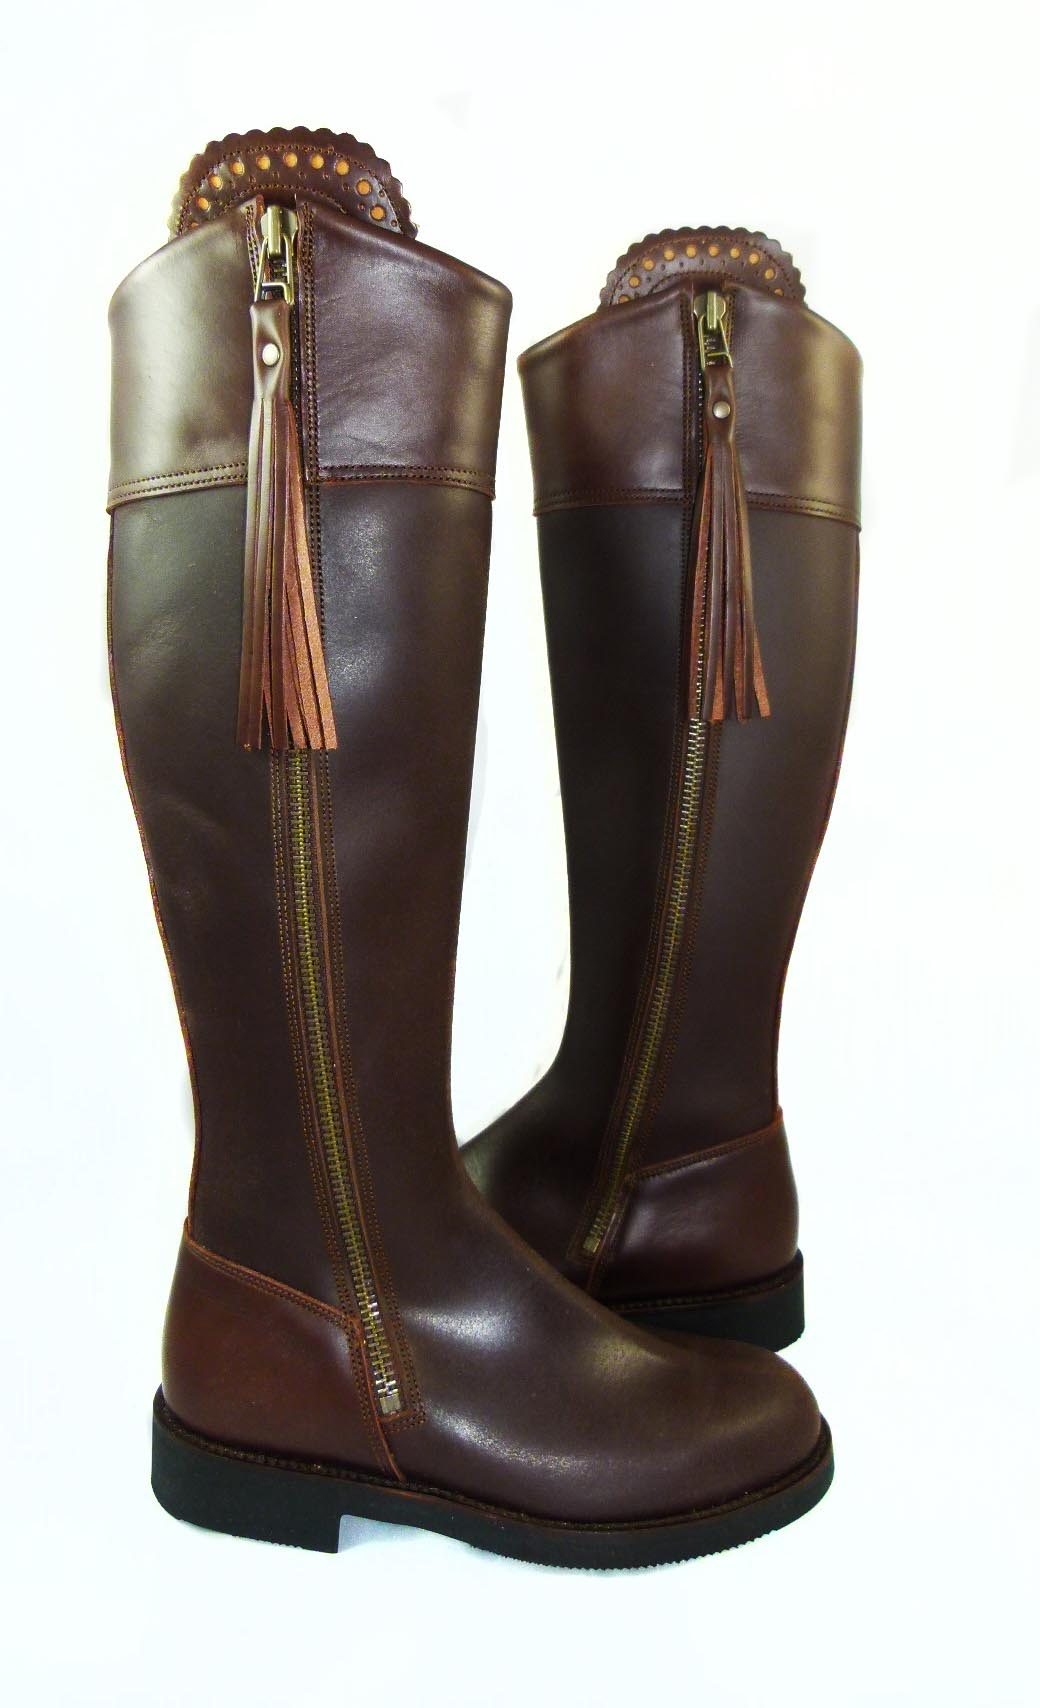 Kept Waxed Unisex For Men And Women Made In The Famous Boot Making